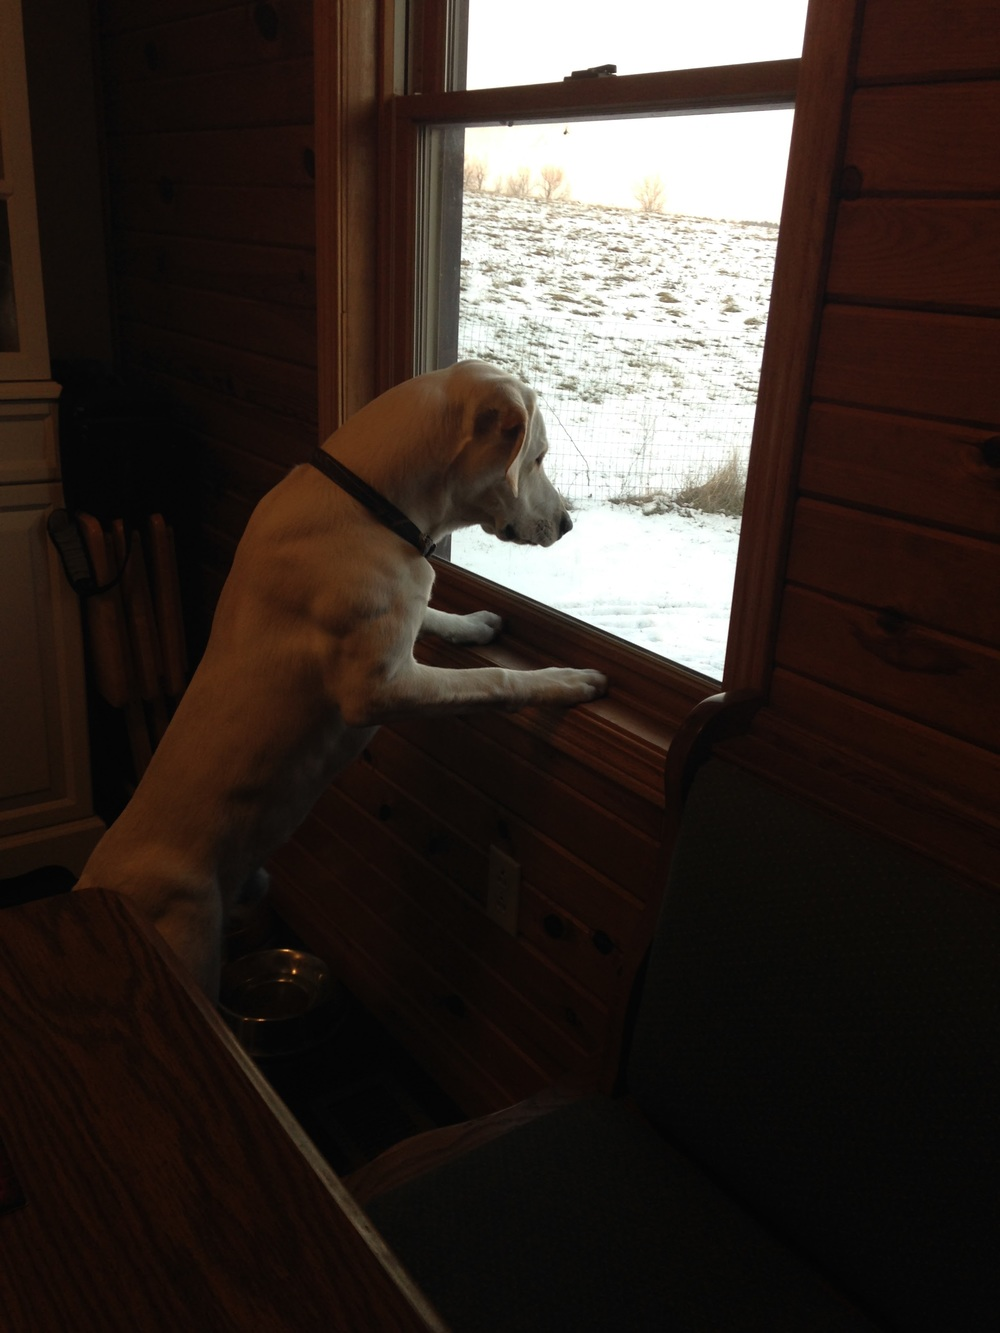 I was not kidding when I said he's a bird dog. He loves to harass the birds outside on our bird feeder.